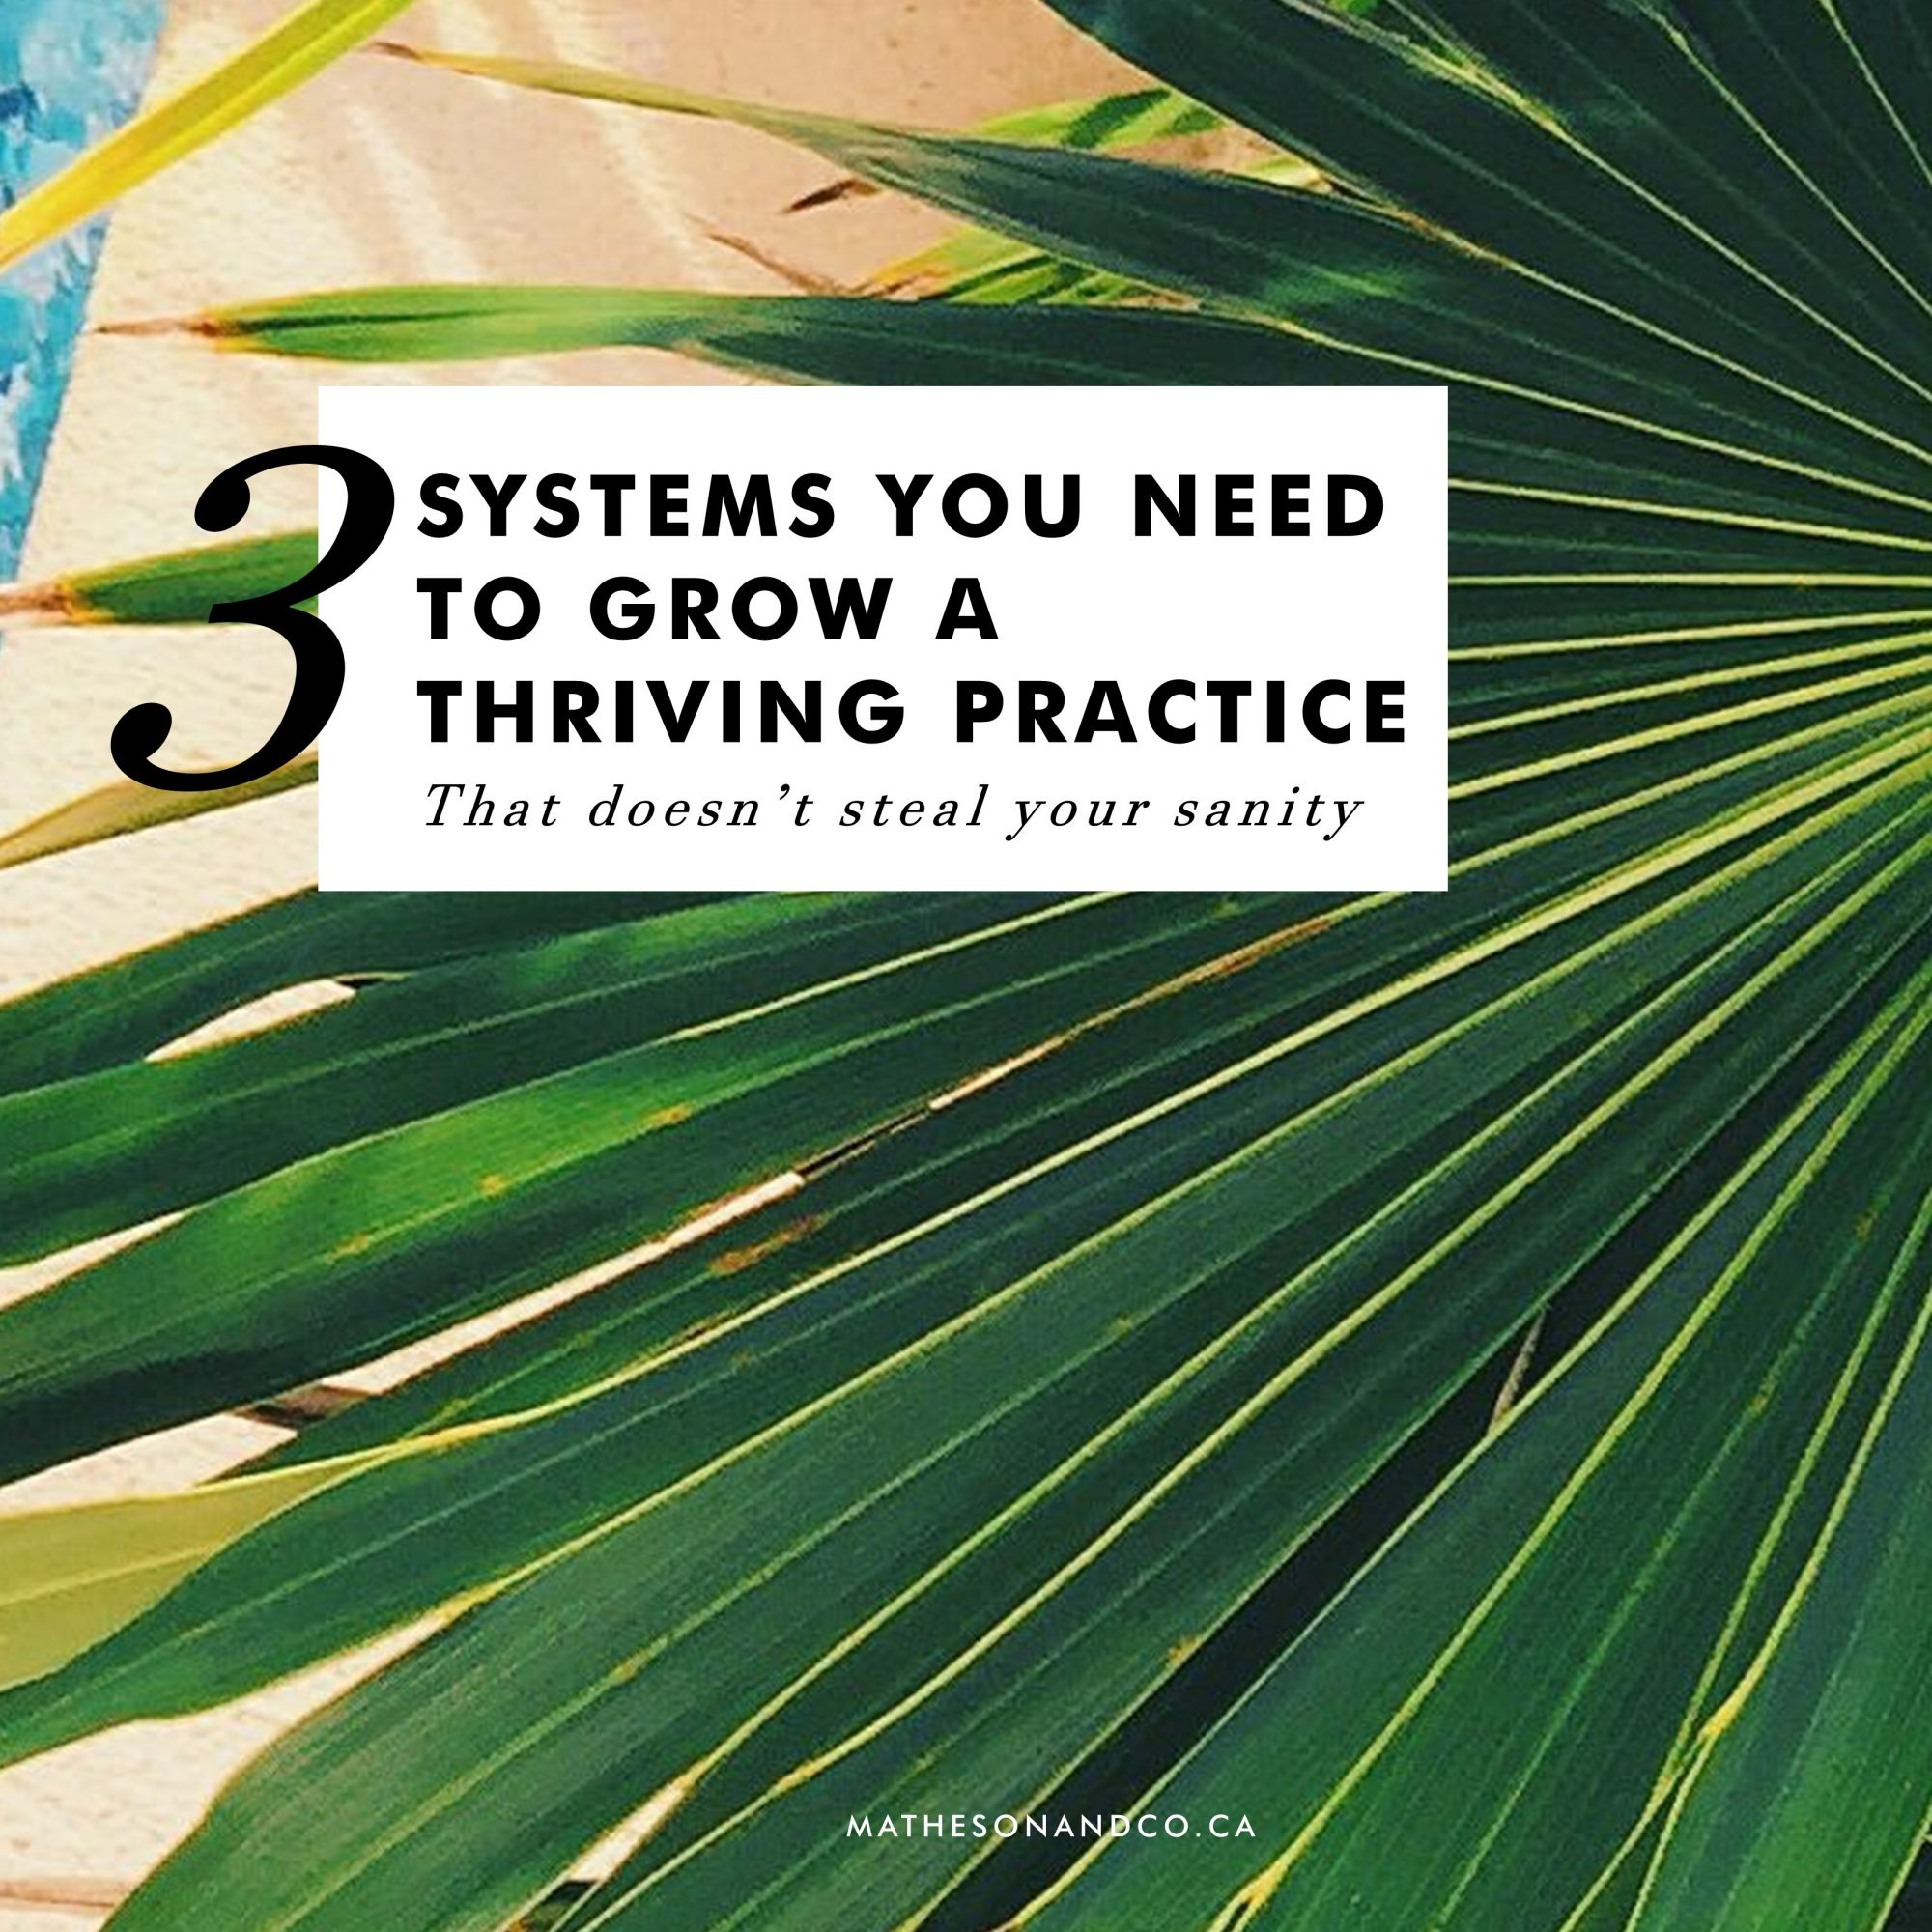 3 Systems You Need to Grow a Thriving Practice